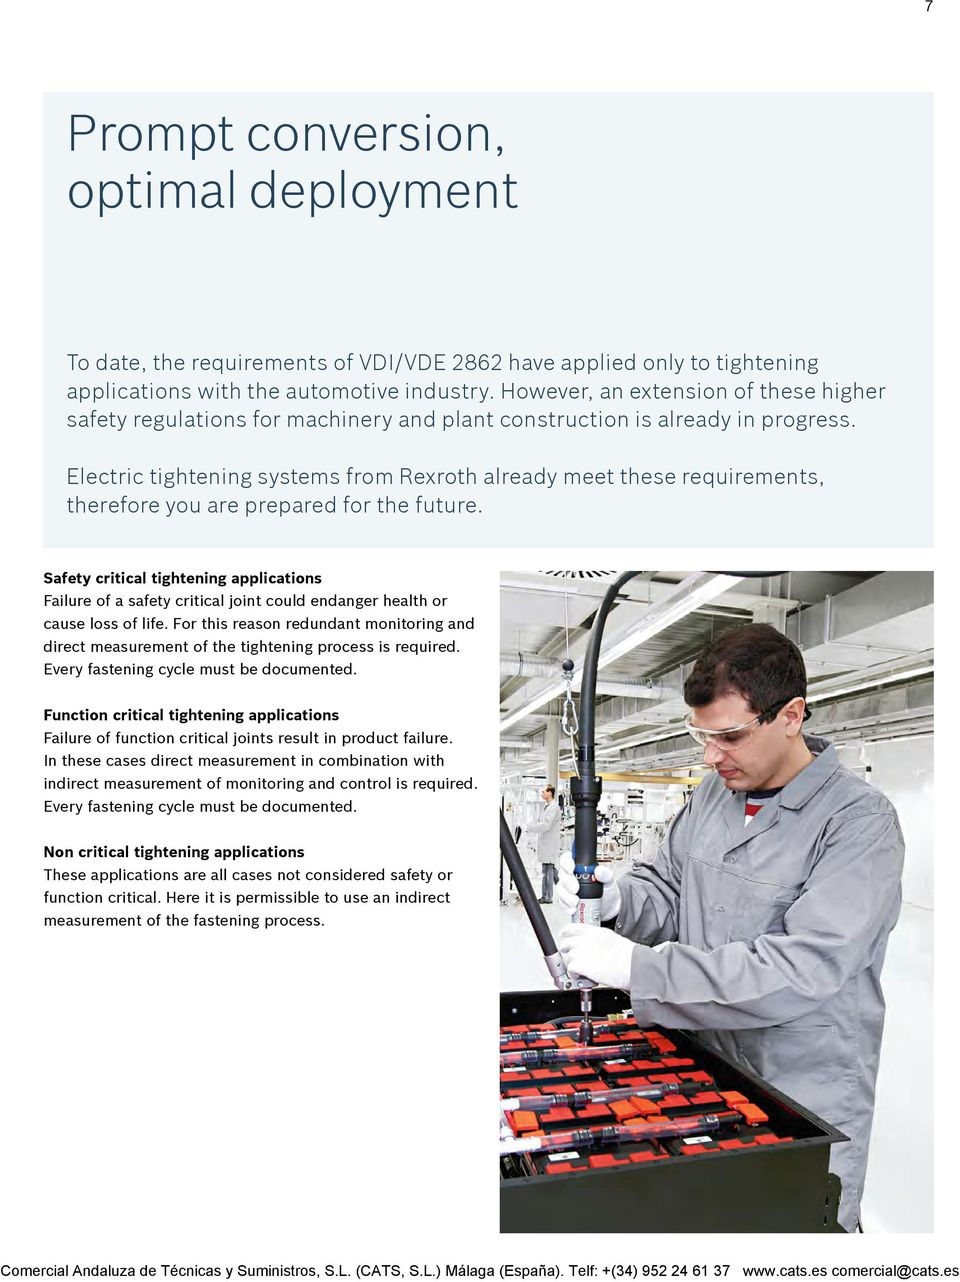 Electric tightening systems from Rexroth already meet these requirements, therefore you are prepared for the future.